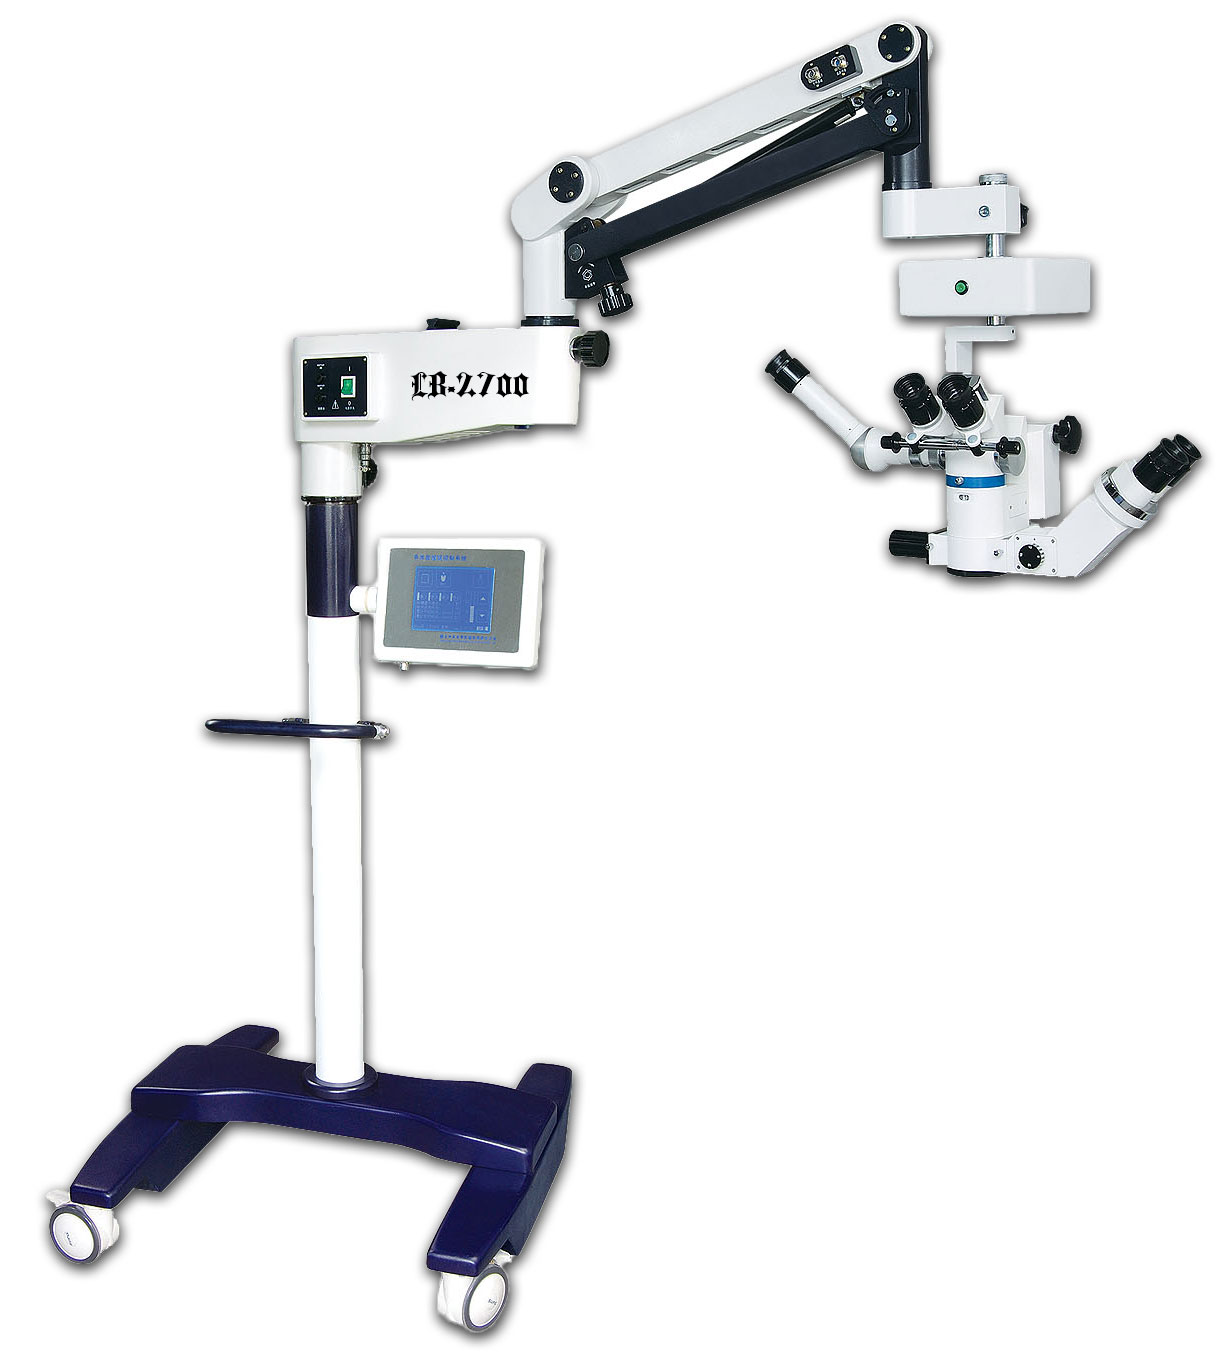 [LB-2700] Binocular Latest Surgical Microscope